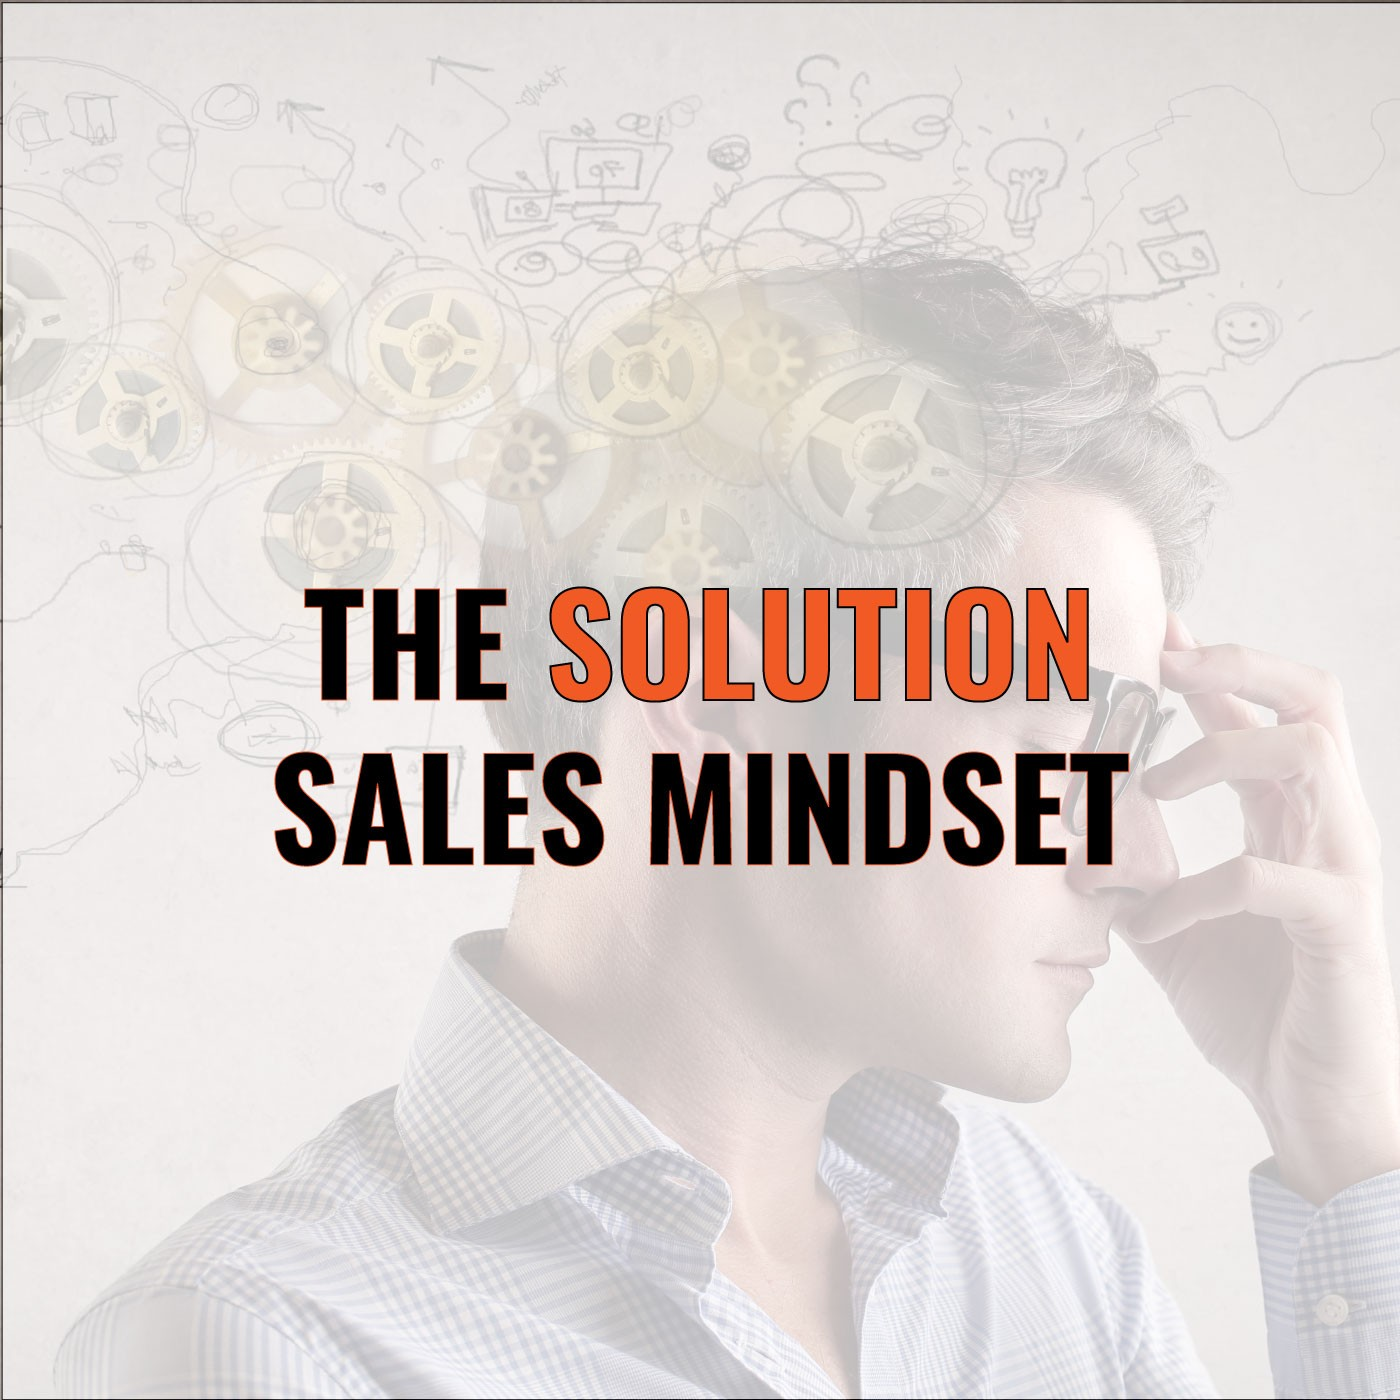 Townsend Wardlaw on The Solution Sales Mindset